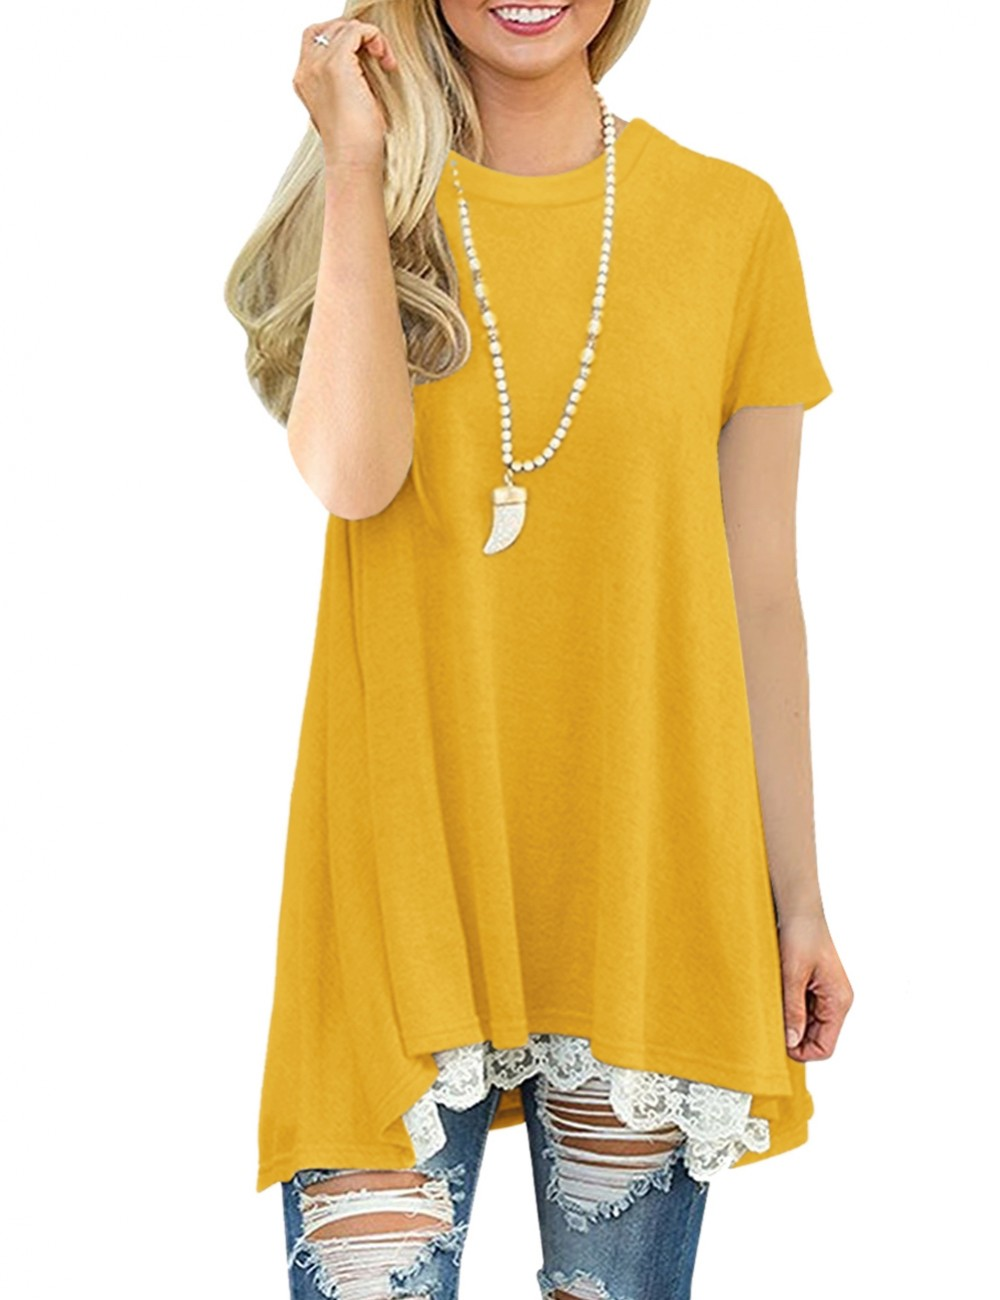 Explorer Yellow Pullover O Neck Top Lace Stitching Super Fashion